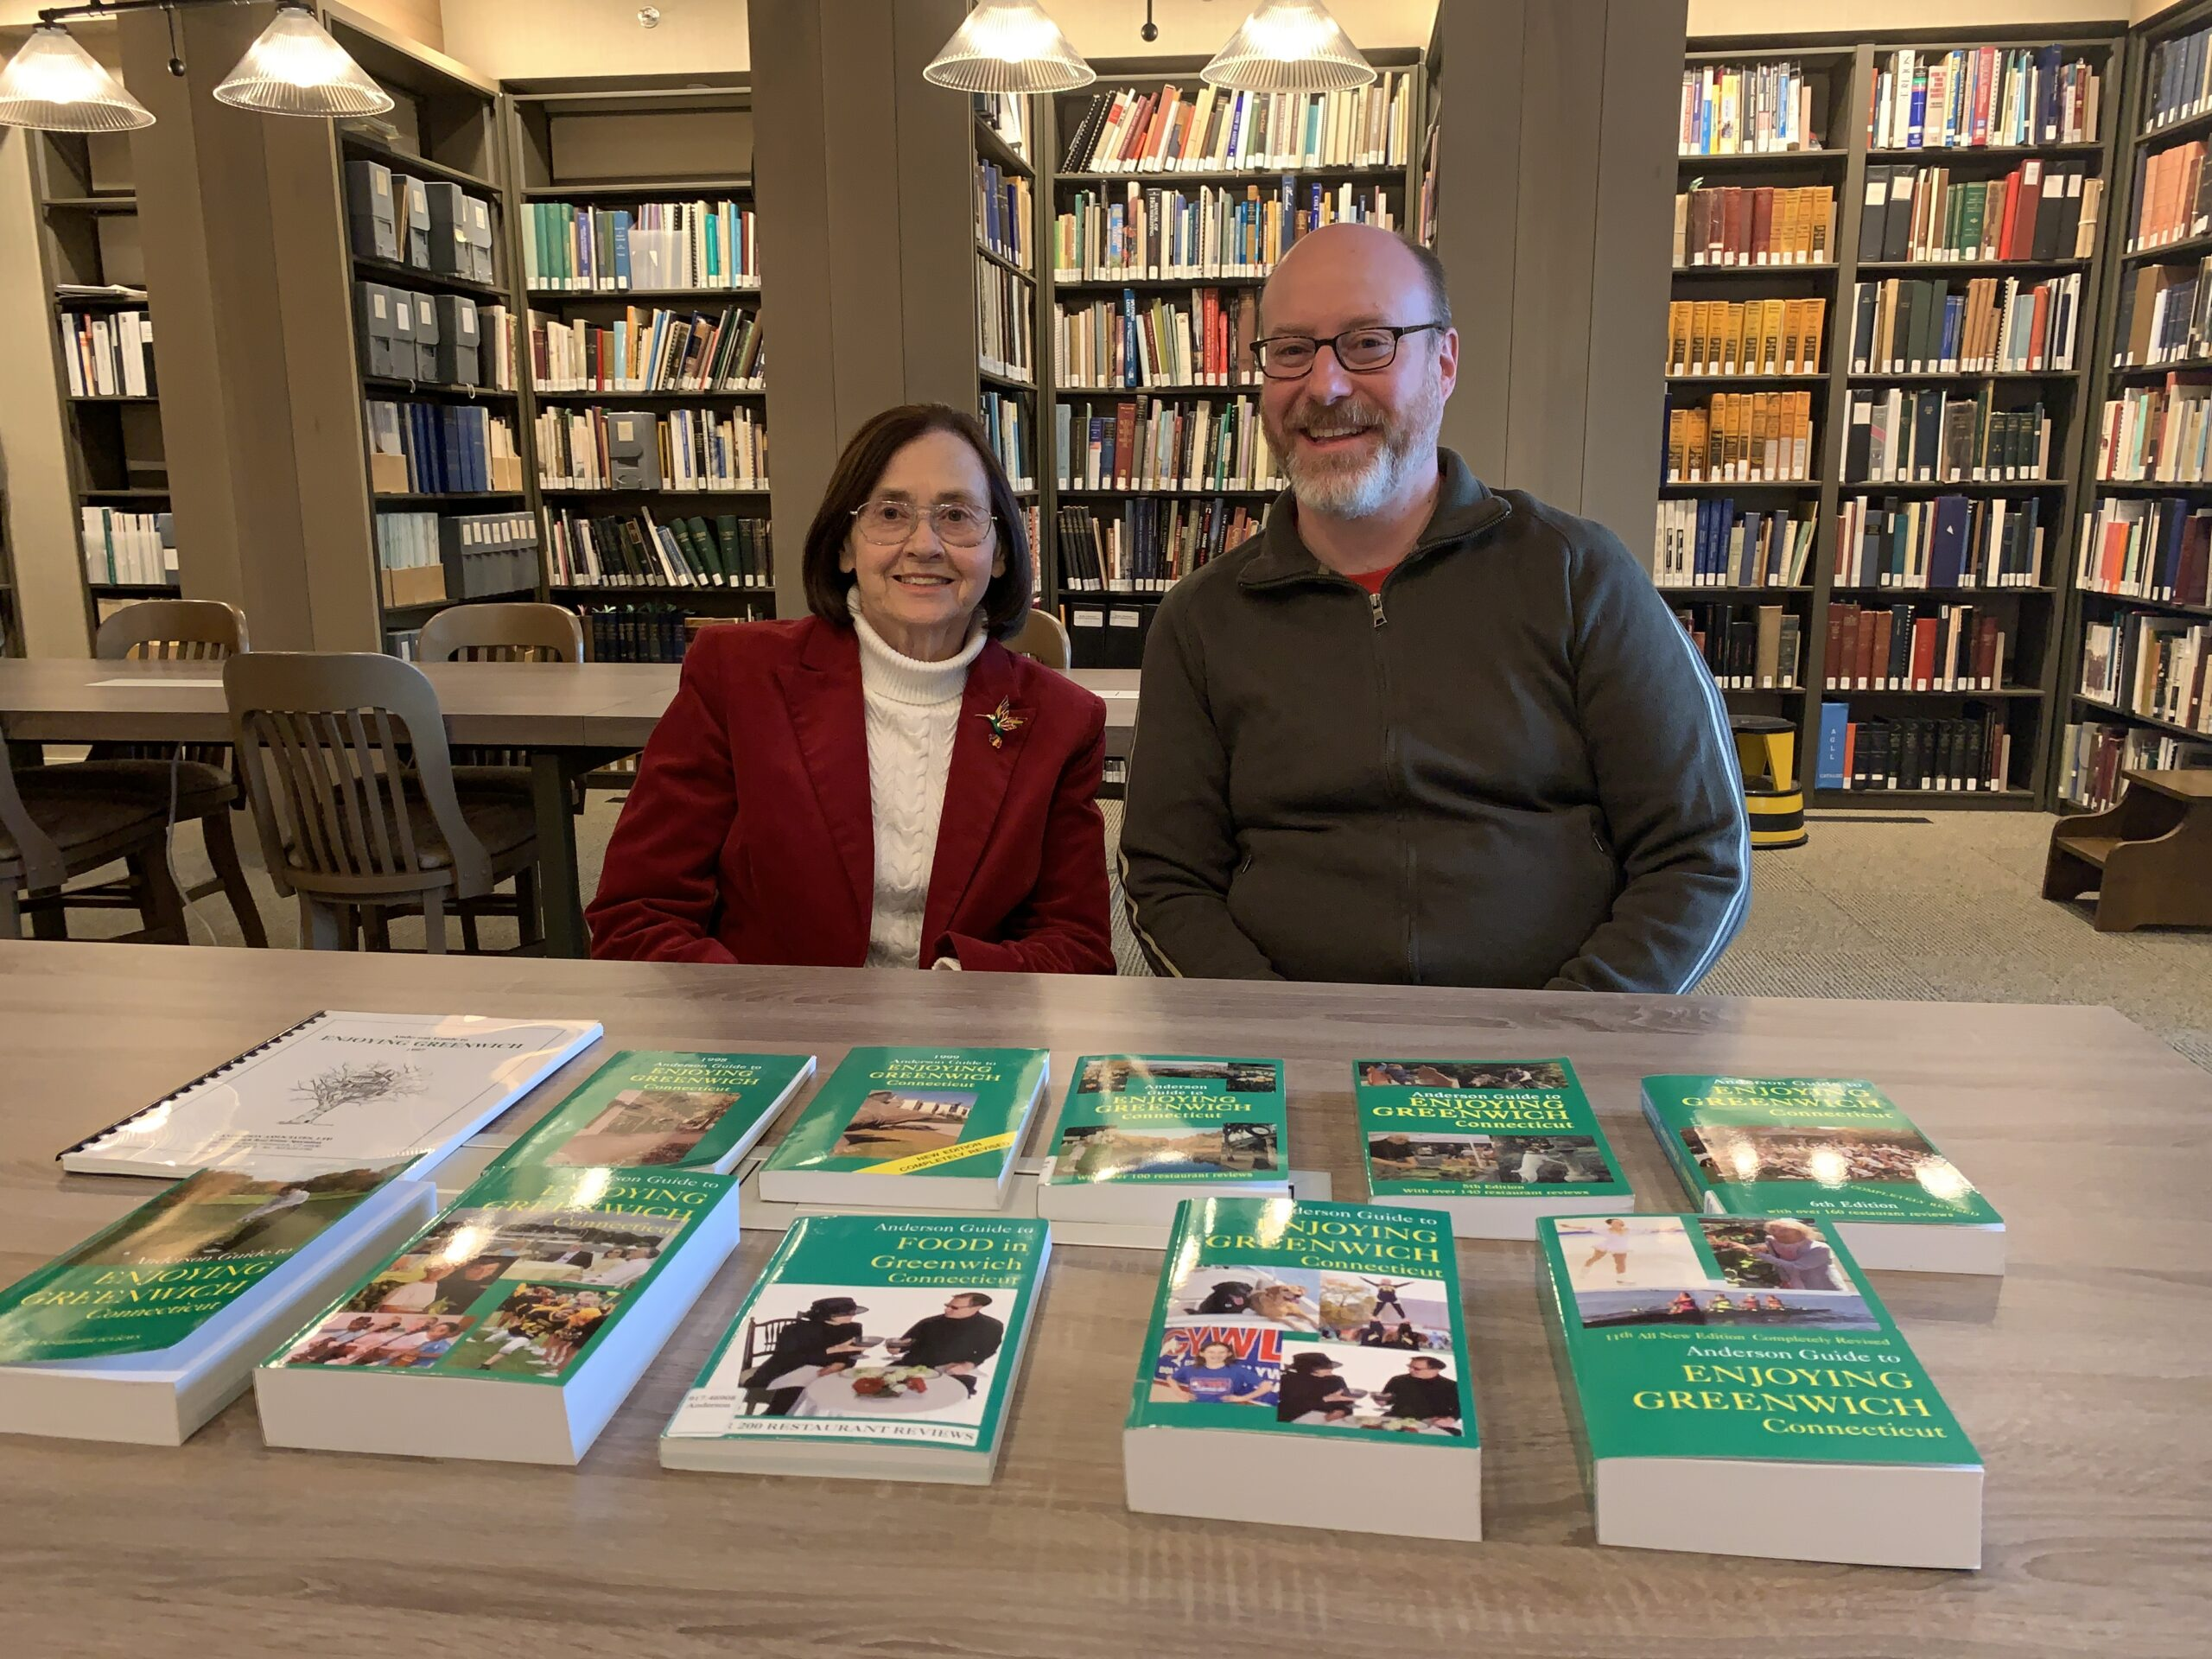 Anderson Guide to Greenwich: Greenwich Historical Society Archives